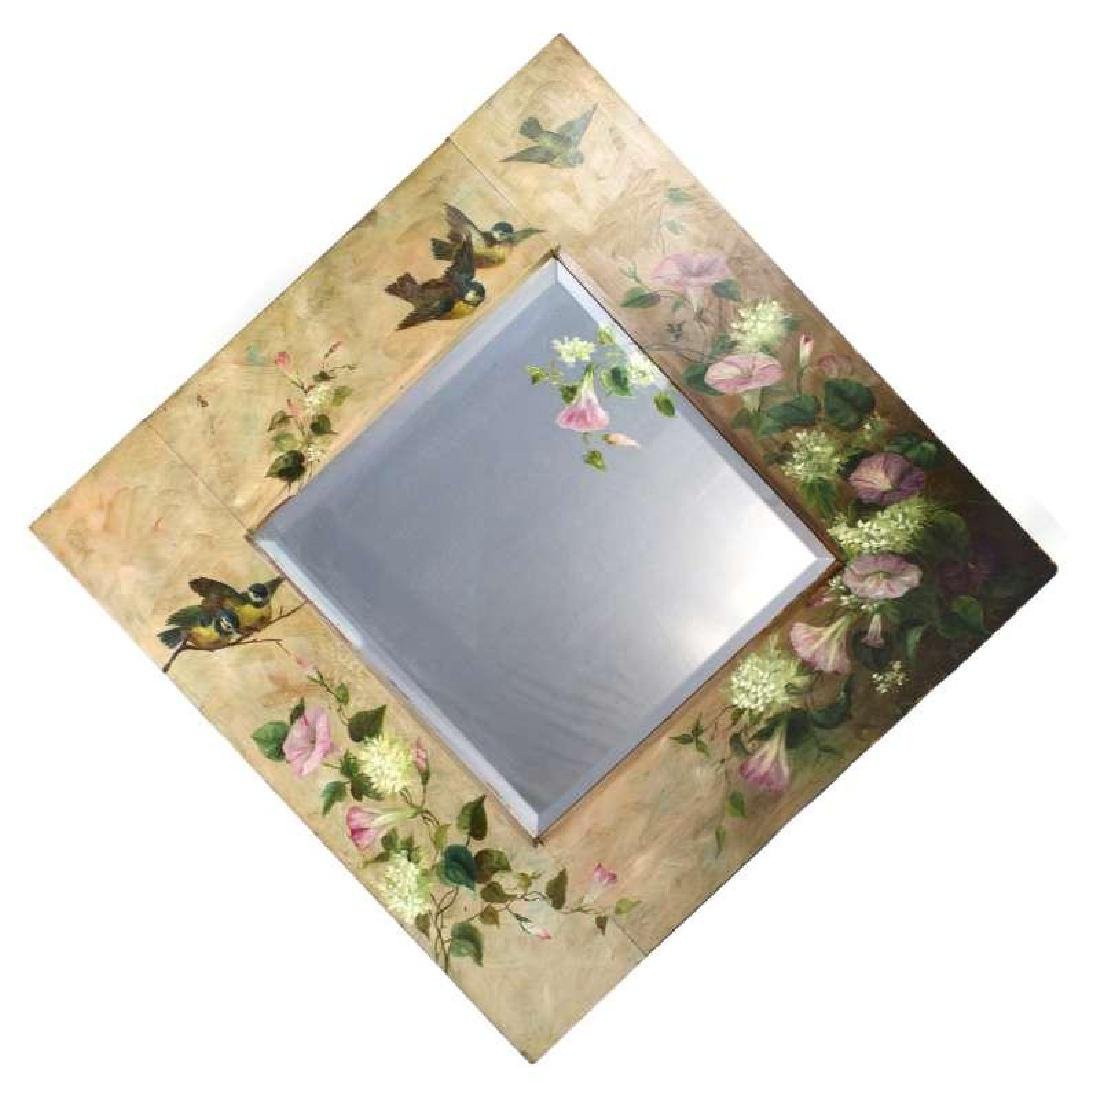 A VICTORIAN PAINTED MIRROR WITH LOVE BIRDS, FLOWER